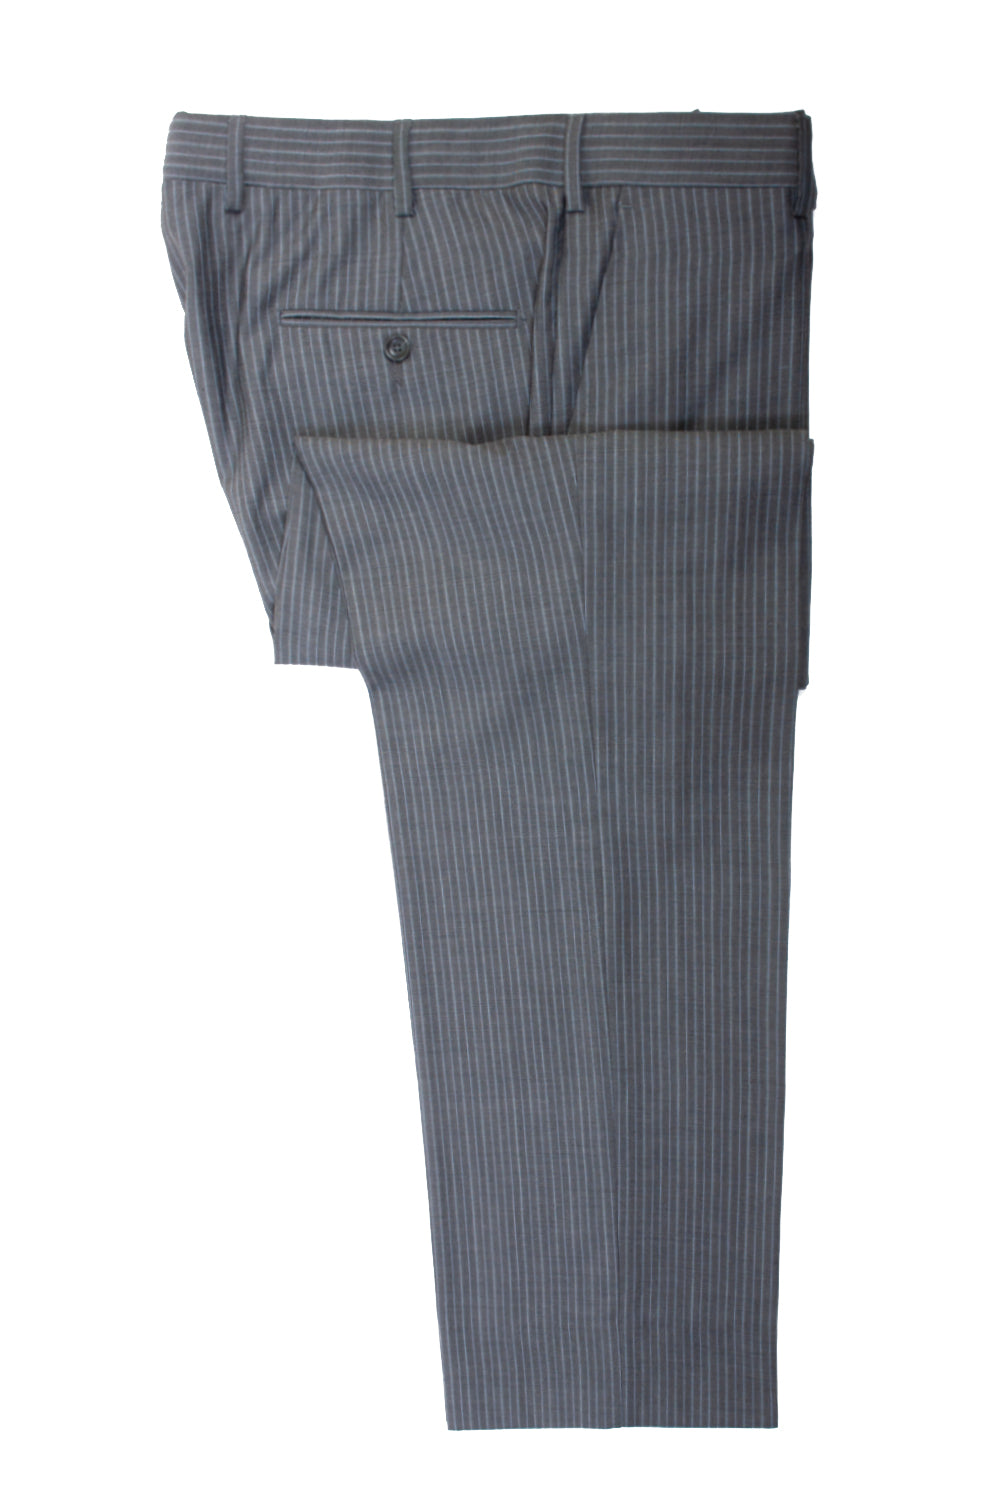 ZZegna Grey Striped City Suit for Luxmrkt.com Menswear Consignment Edmonton